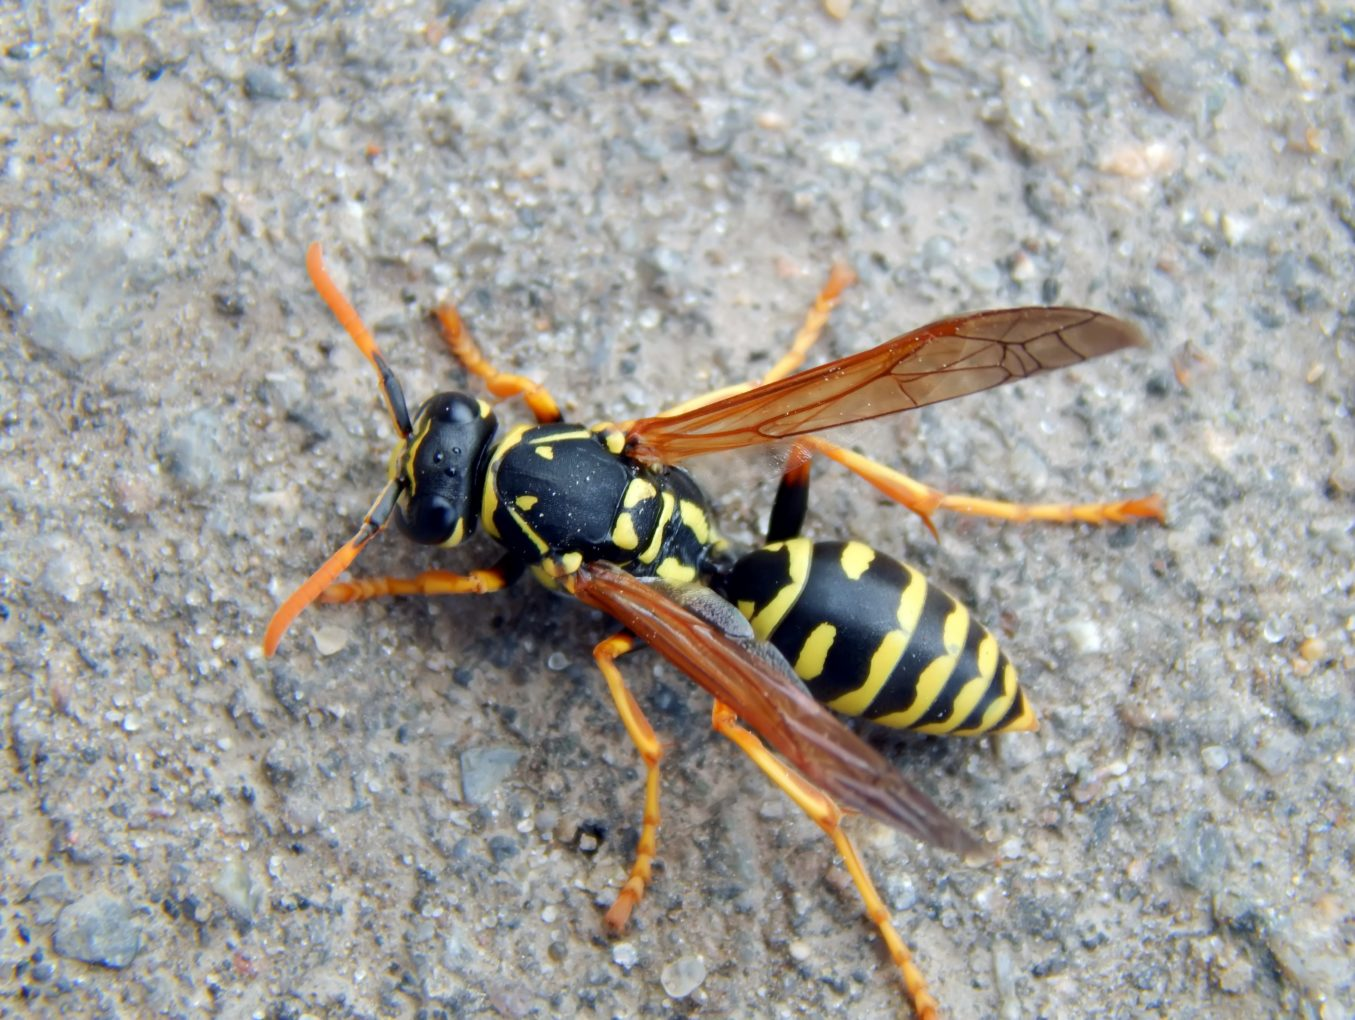 Wasp Removal And Control